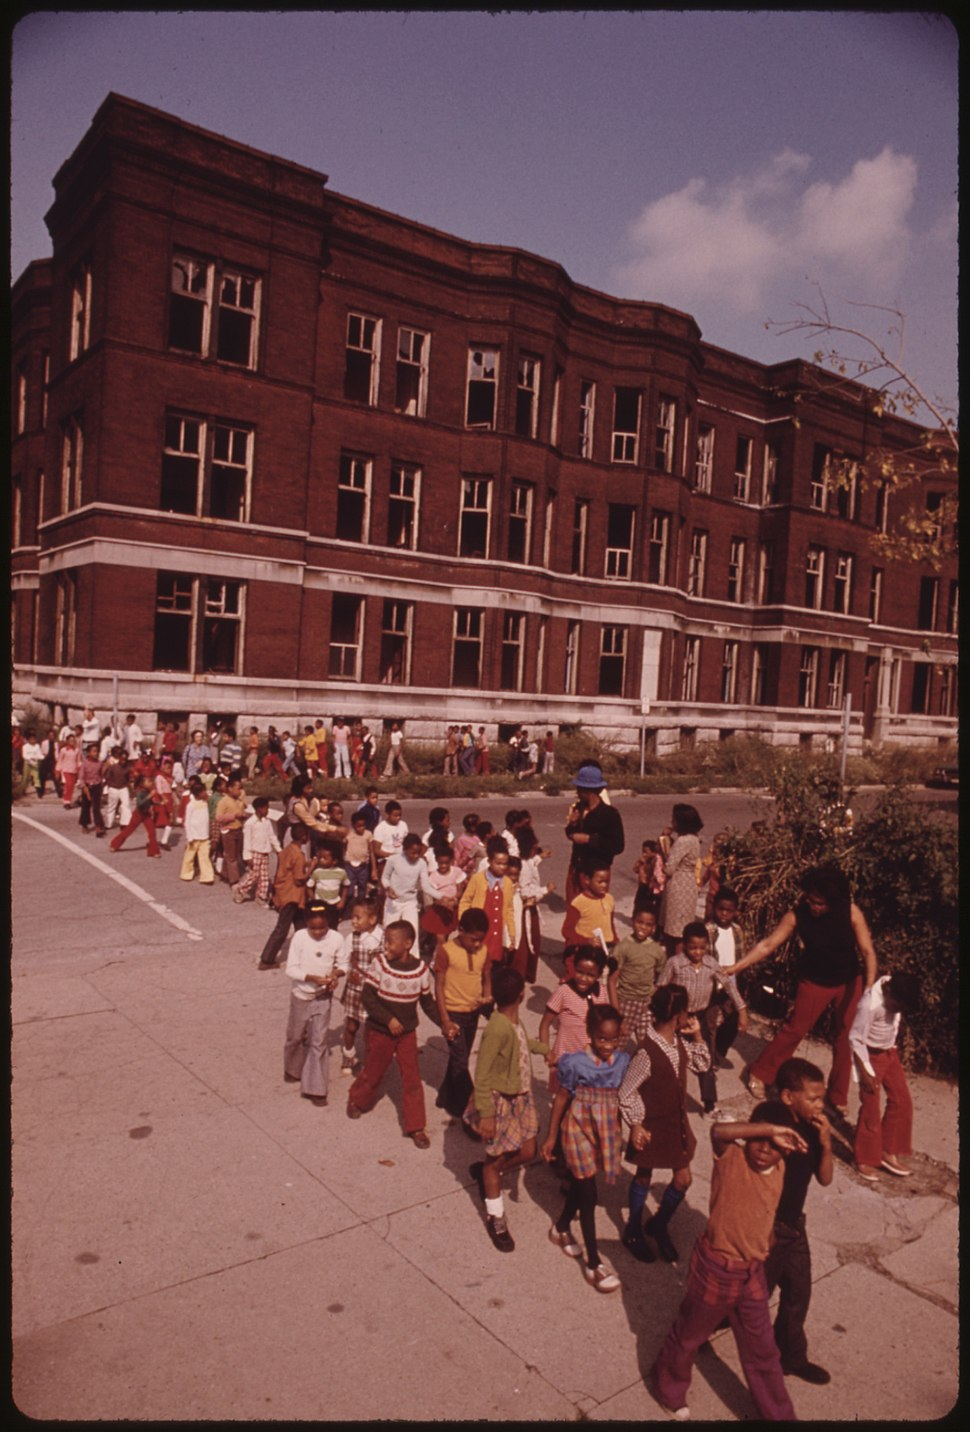 YOUNGSTERS RETURNING TO CLASS FOLLOWING A FIRE DRILL IN A CHICAGO ELEMENTARY SCHOOL. FIRE DRILLS ASSUME A GREATER... - NARA - 556265